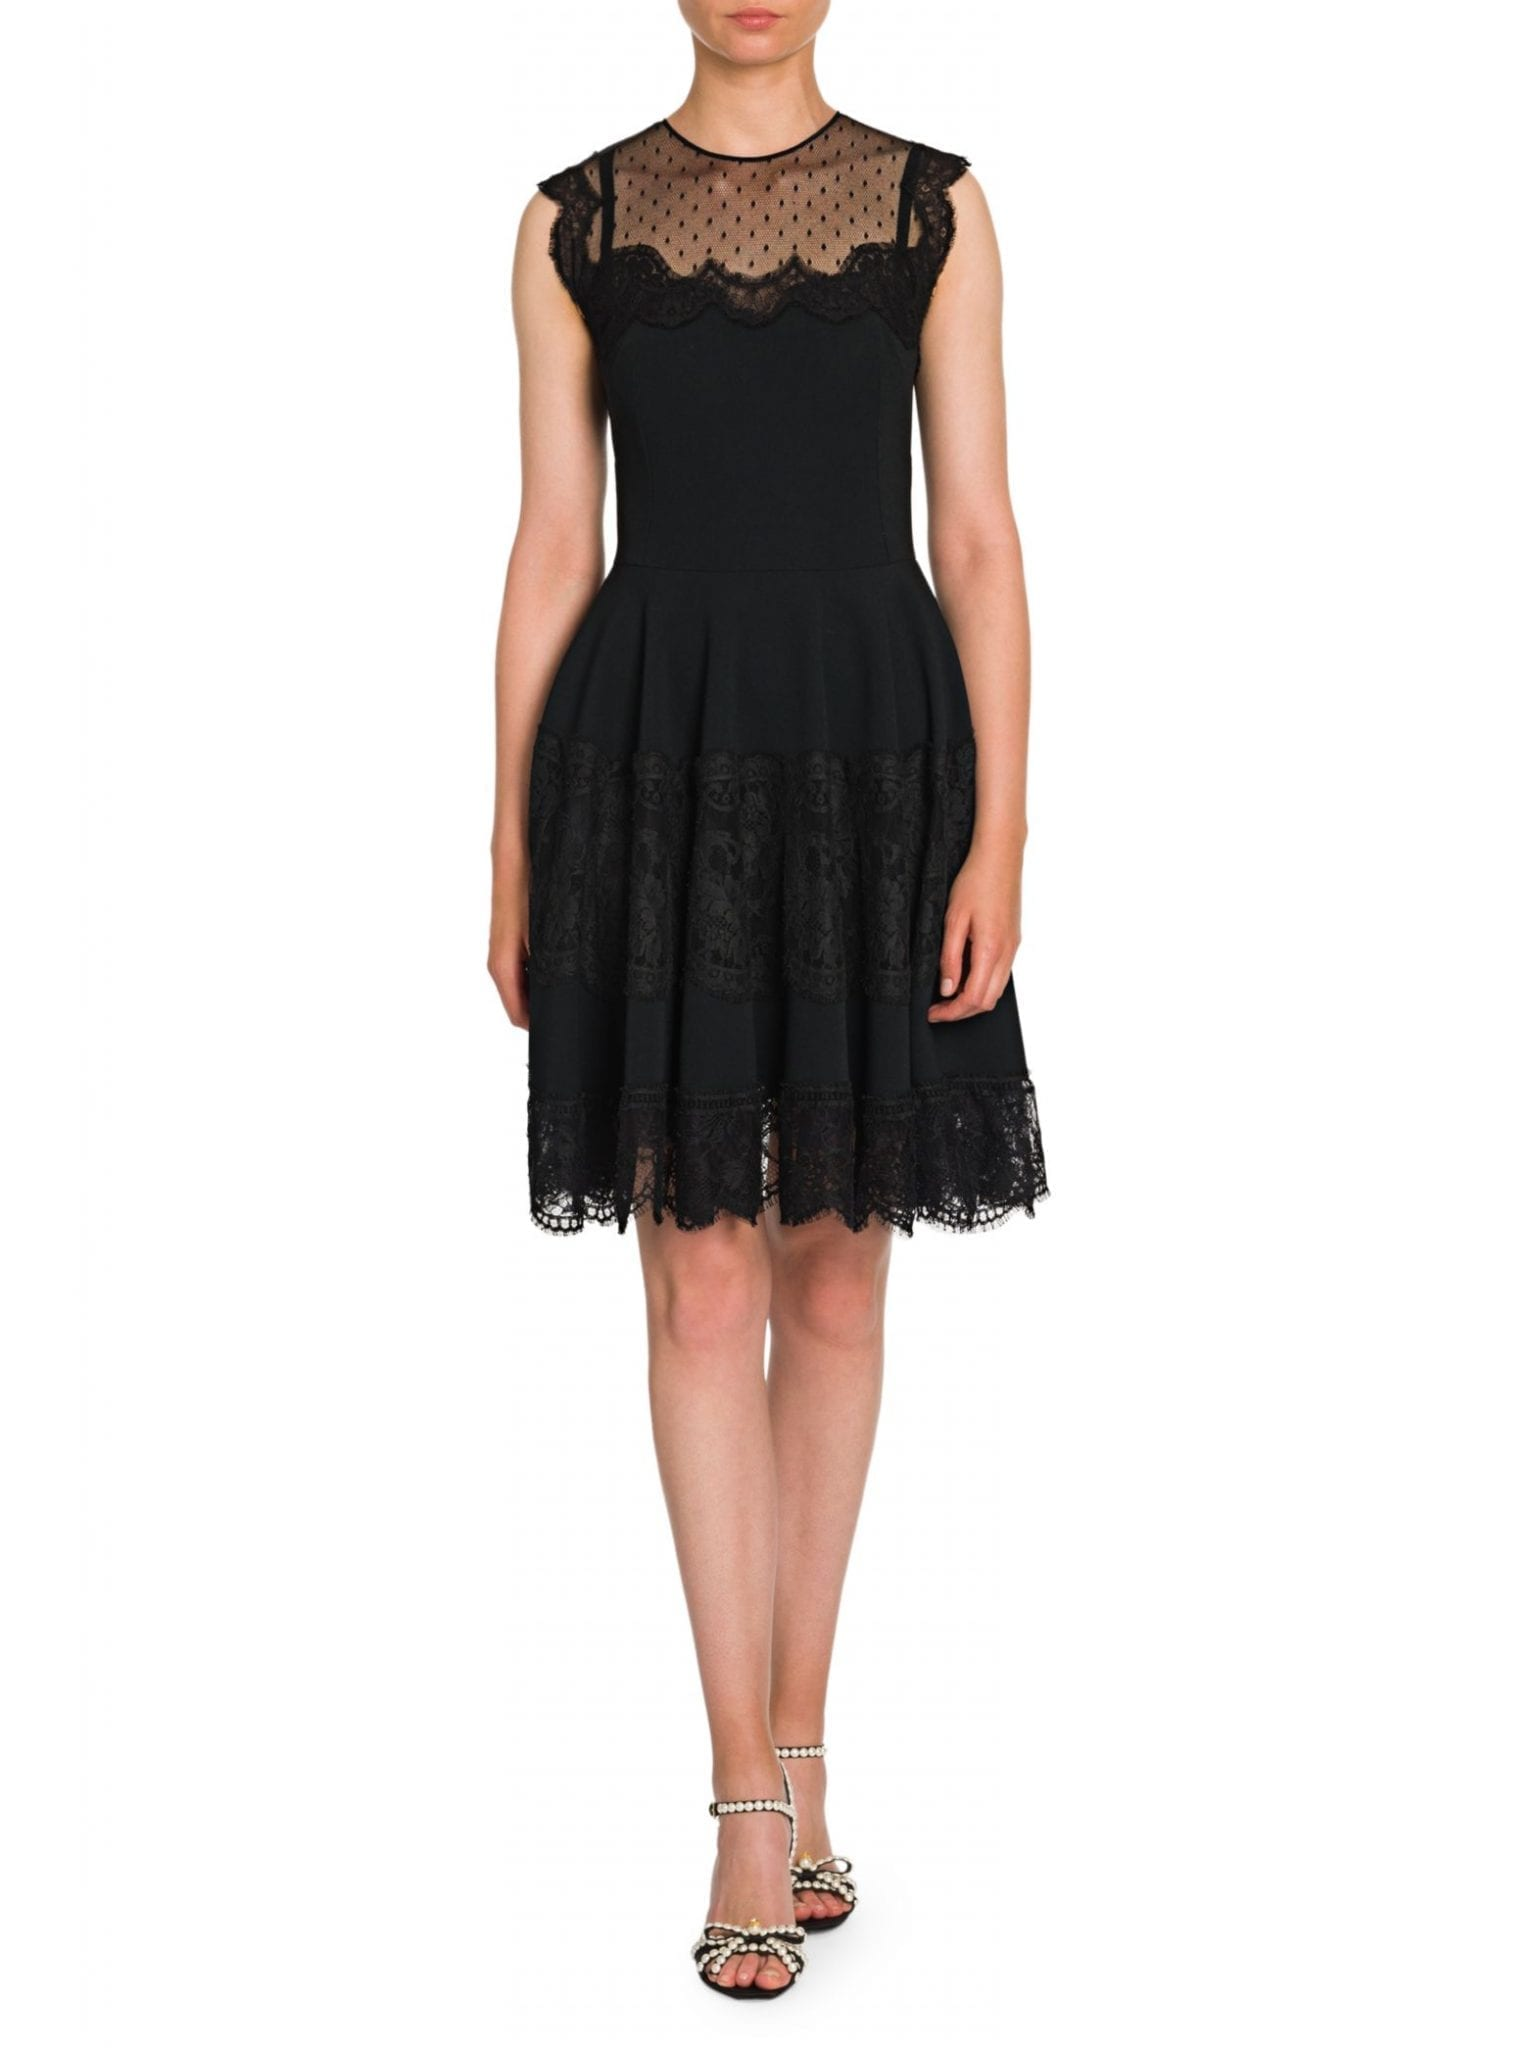 DOLCE & GABBANA Sleeveless Lace Flutter Mini Dress